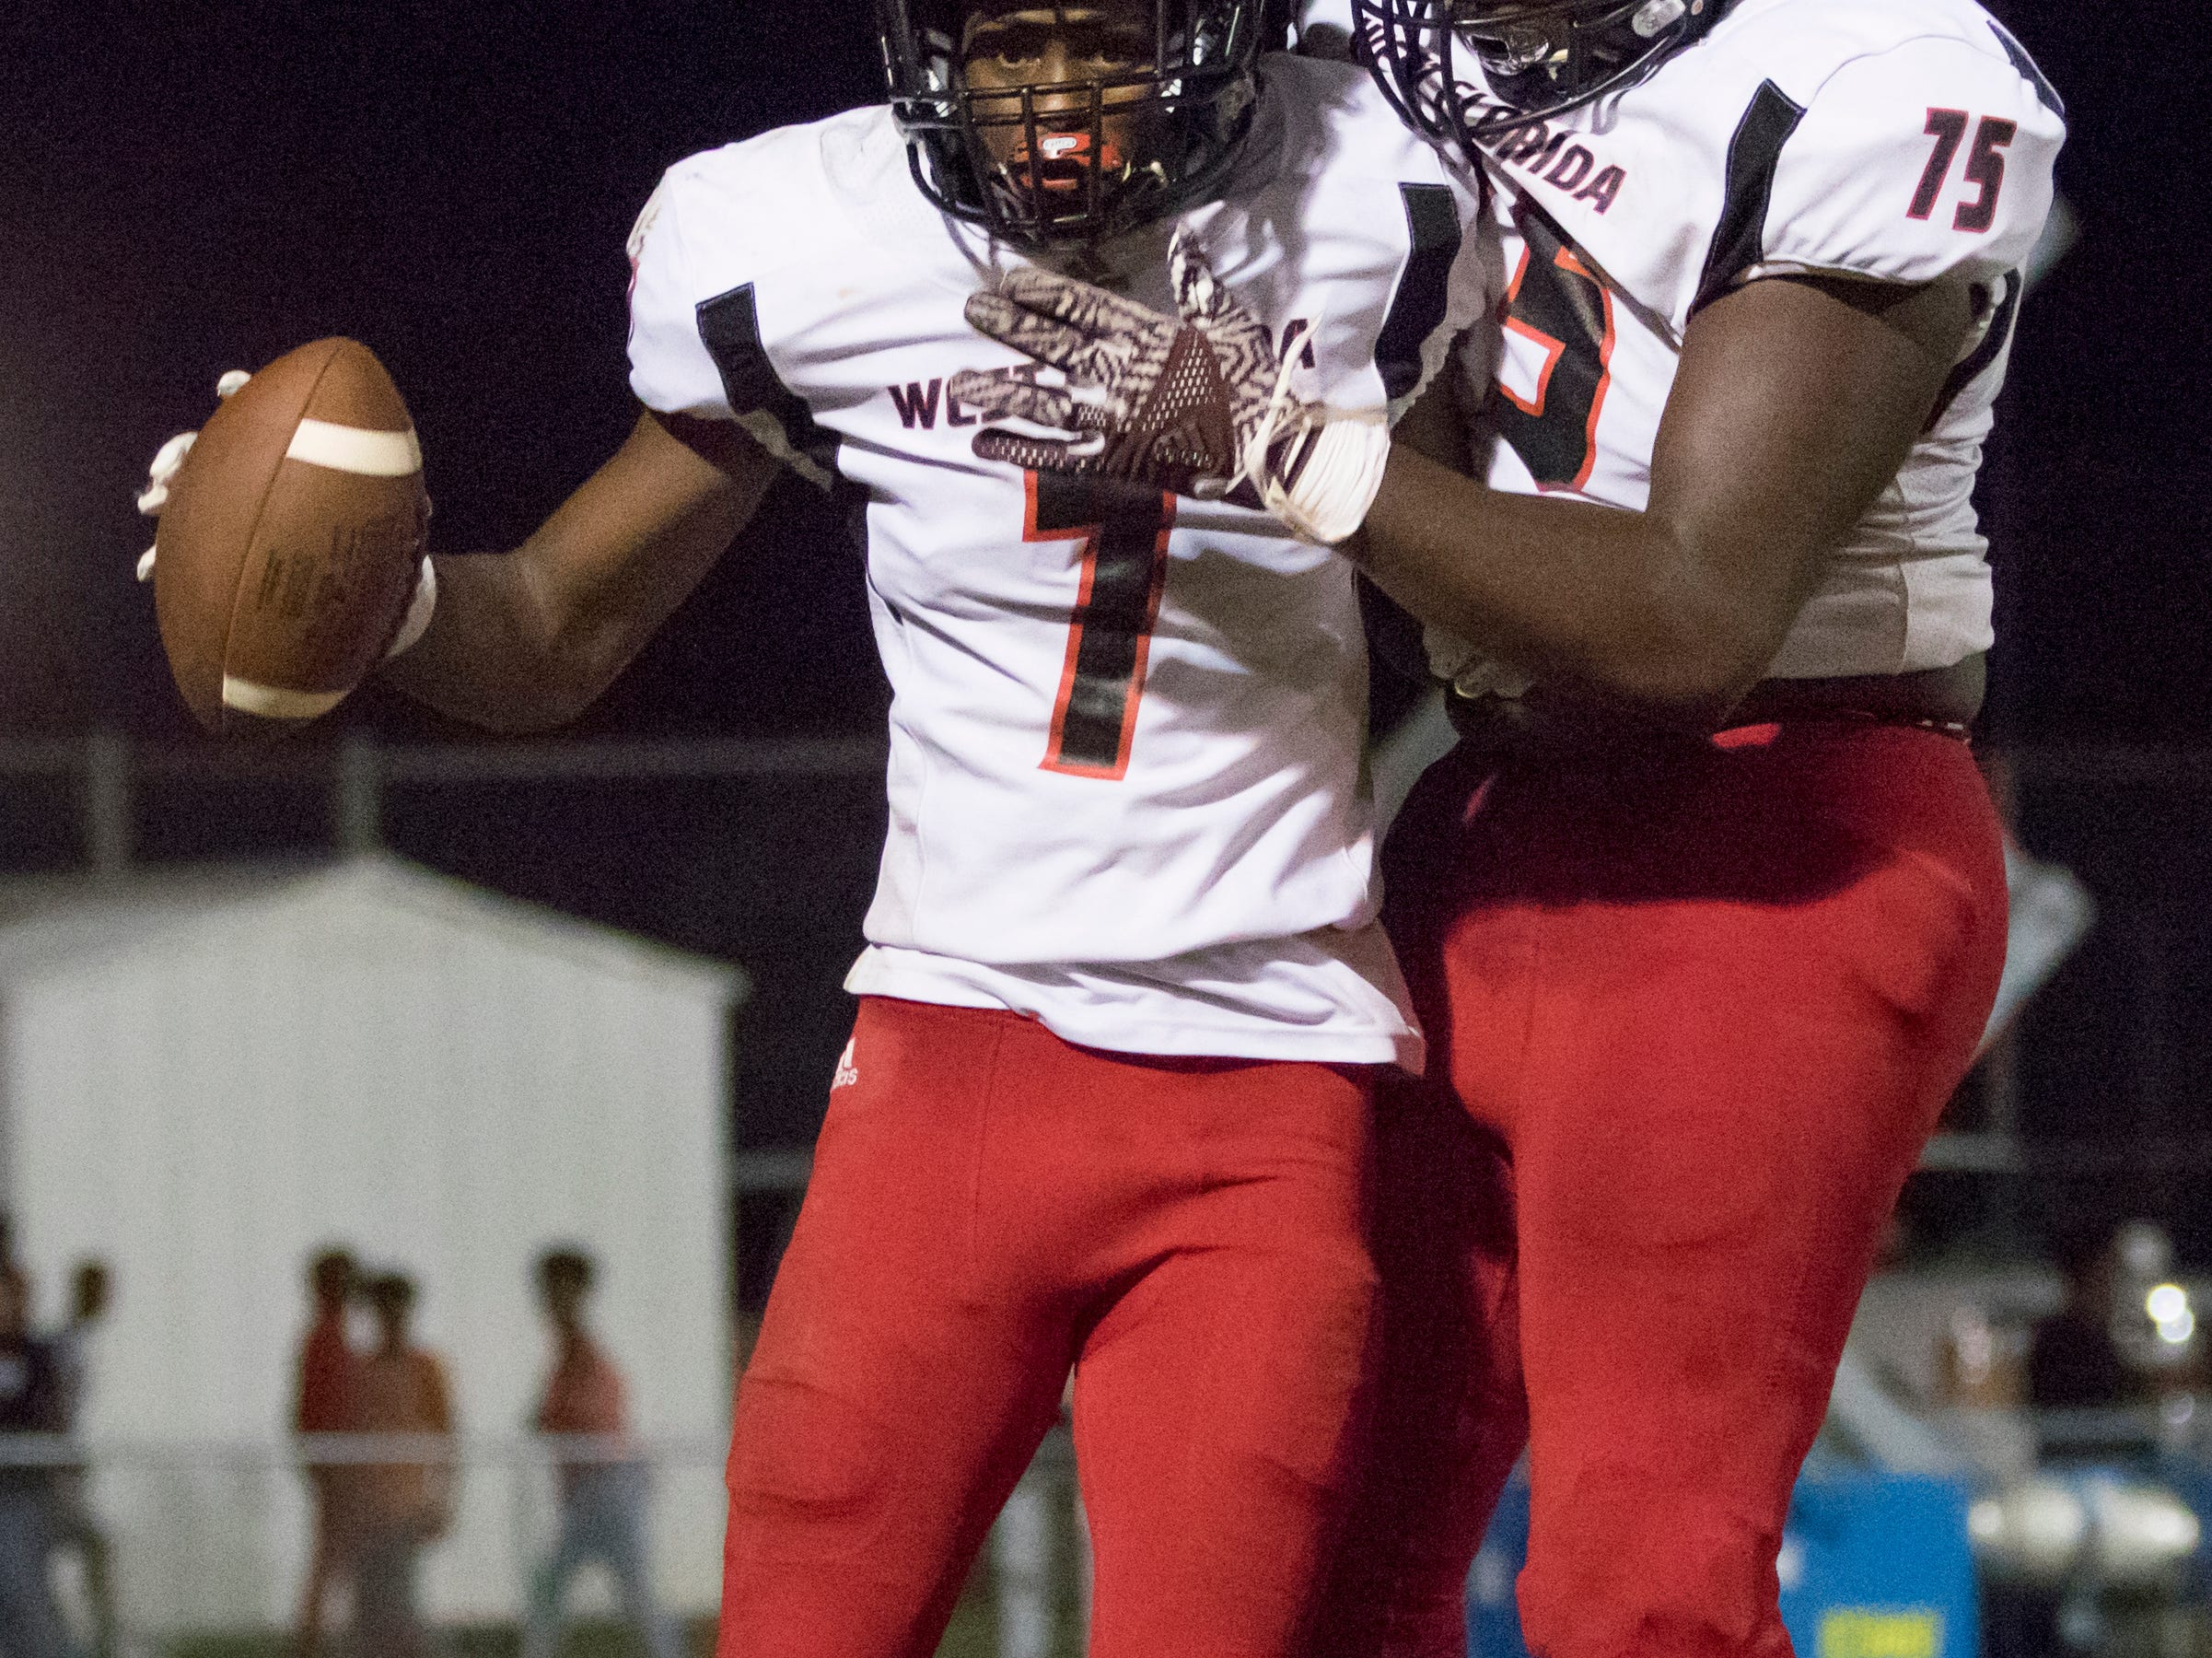 Keion Burrell (7) and Darius Washington (75) celebrate a touchdown during the West Florida vs Pine Forest football game at Pine Forest High School in Pensacola on Friday, October 5, 2018.  The Eagles lead was 14-12 after the Jaguars' 2 point attempt failed.